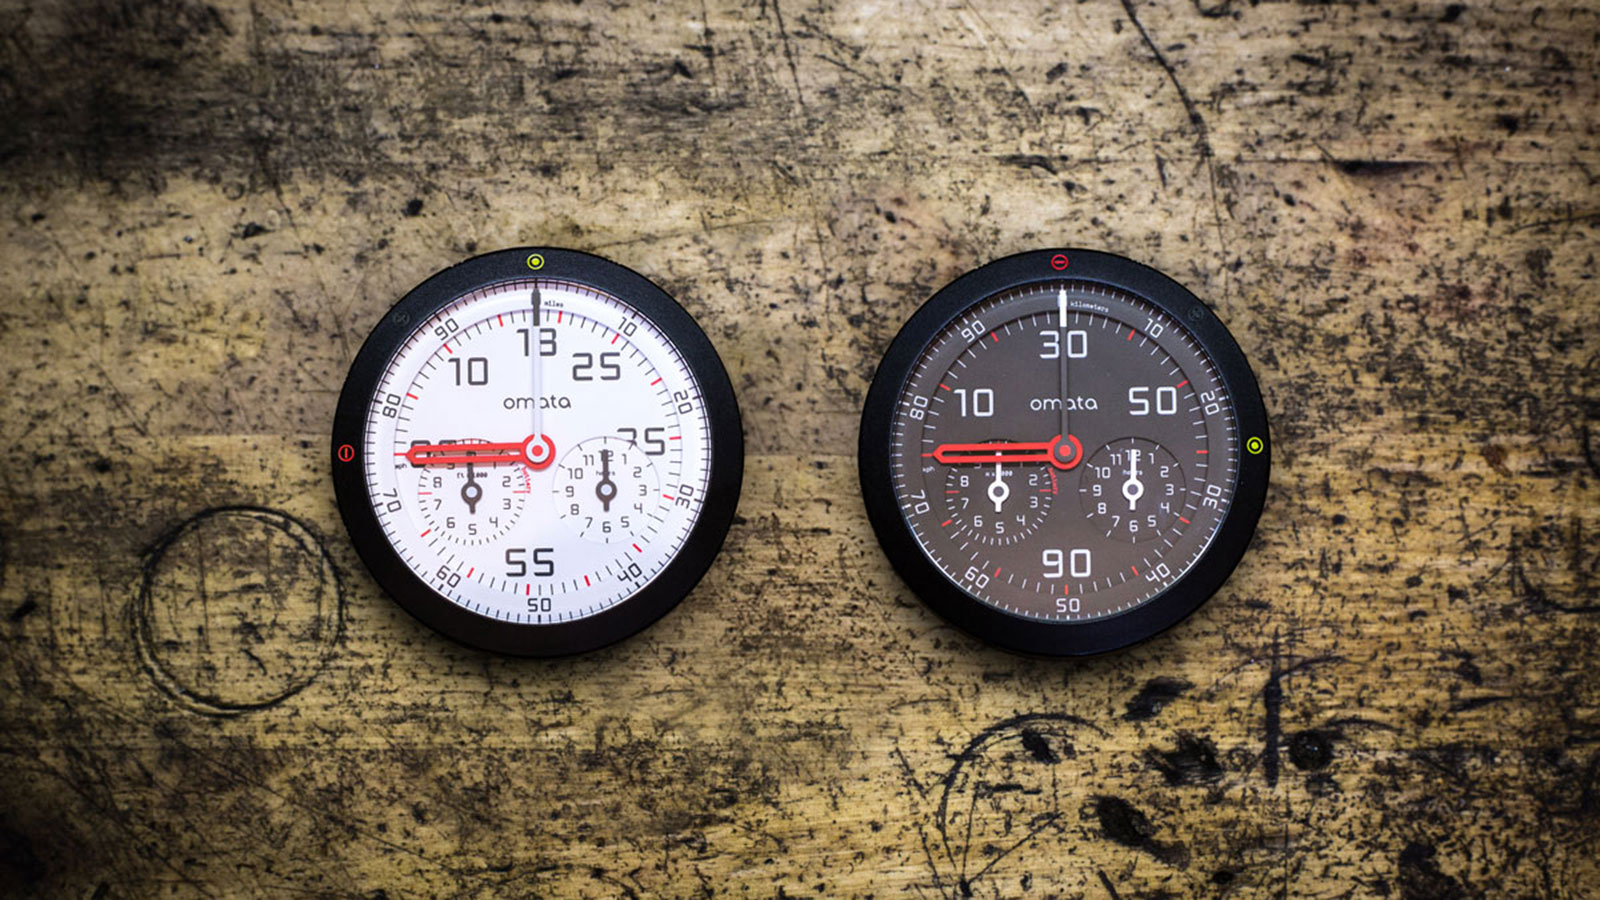 OMATA ONE BIKE SPEEDOMETER